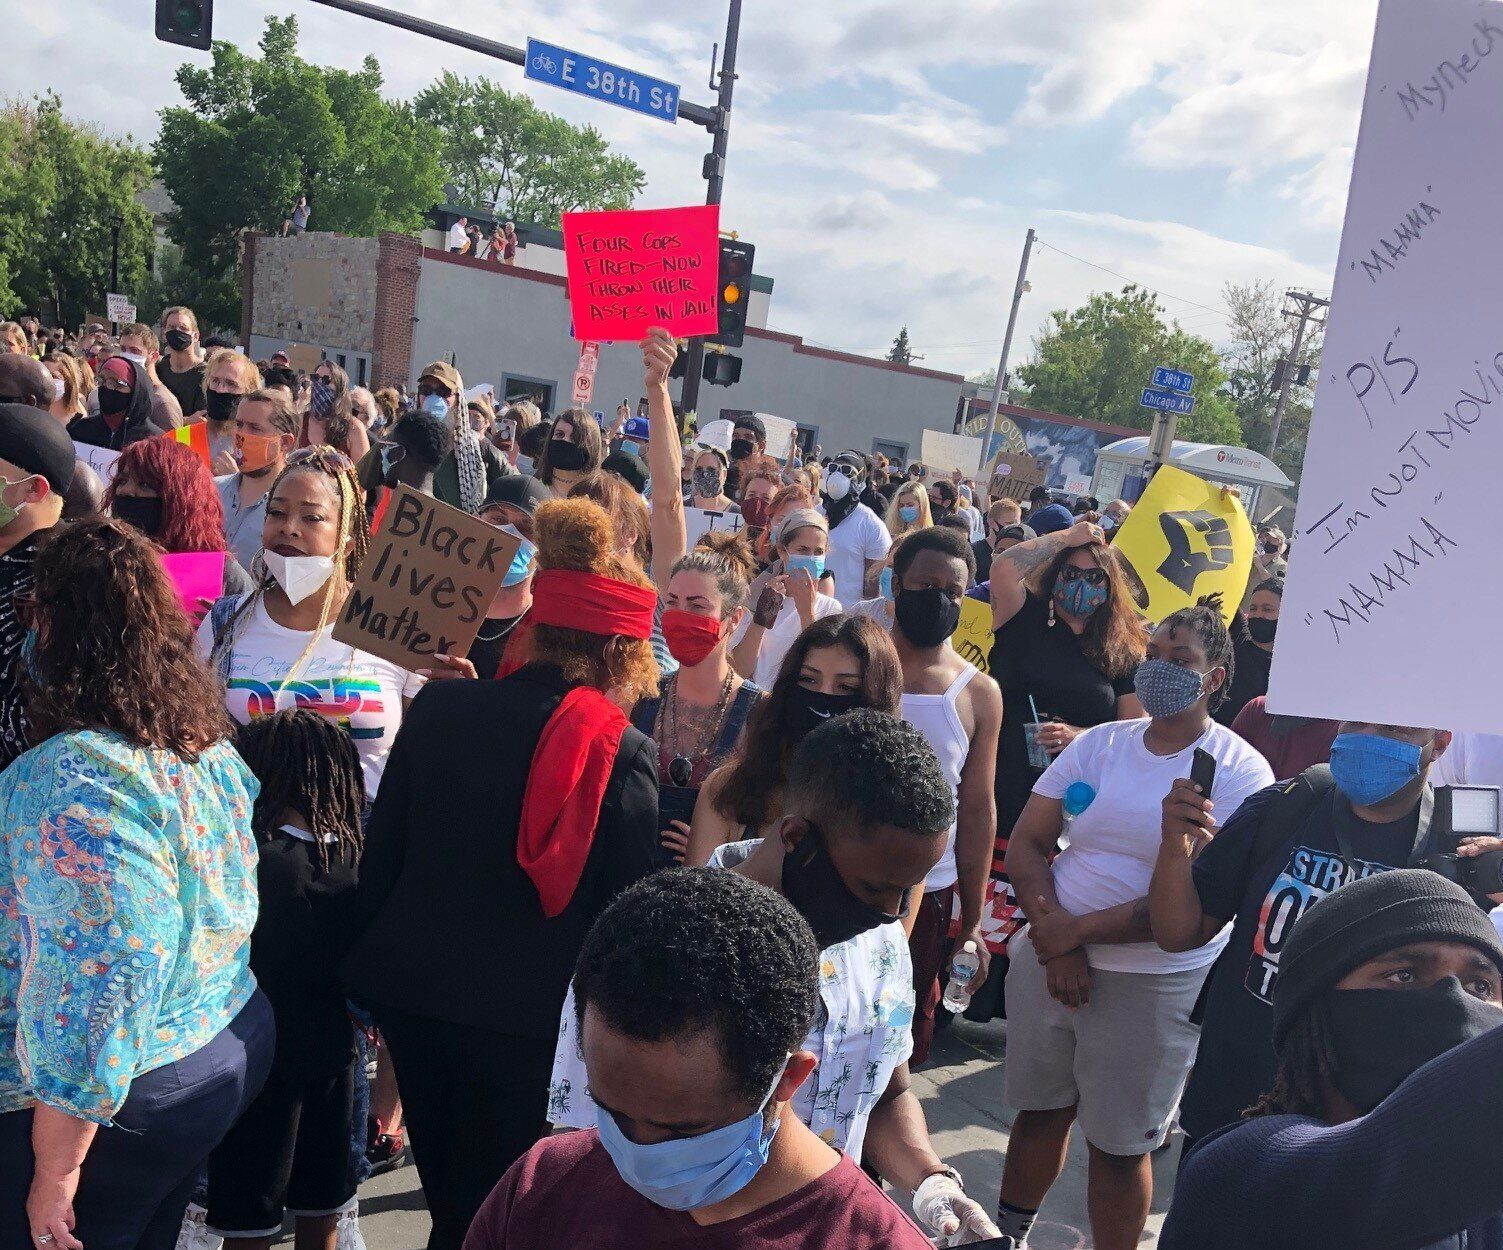 Protesters on the corner of 38th Street and Chicago Avenue in Minneapolis, where Floyd died.